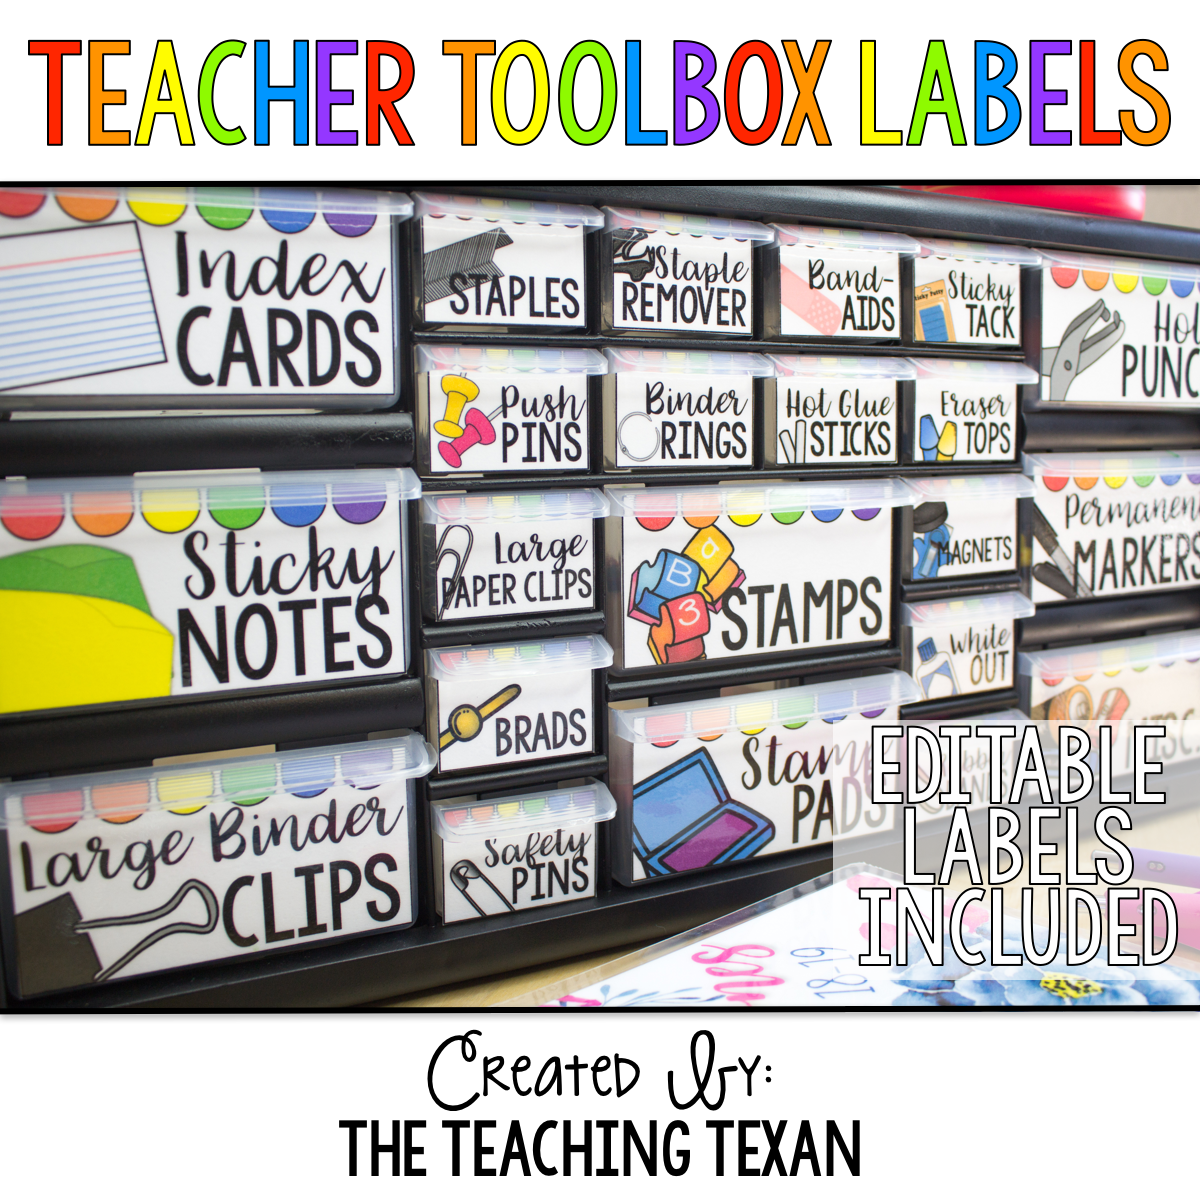 Bright Teacher Toolbox Labels Editable Template Included Teacher Toolbox Labels Teacher Toolbox Labels Editable Teacher Toolbox